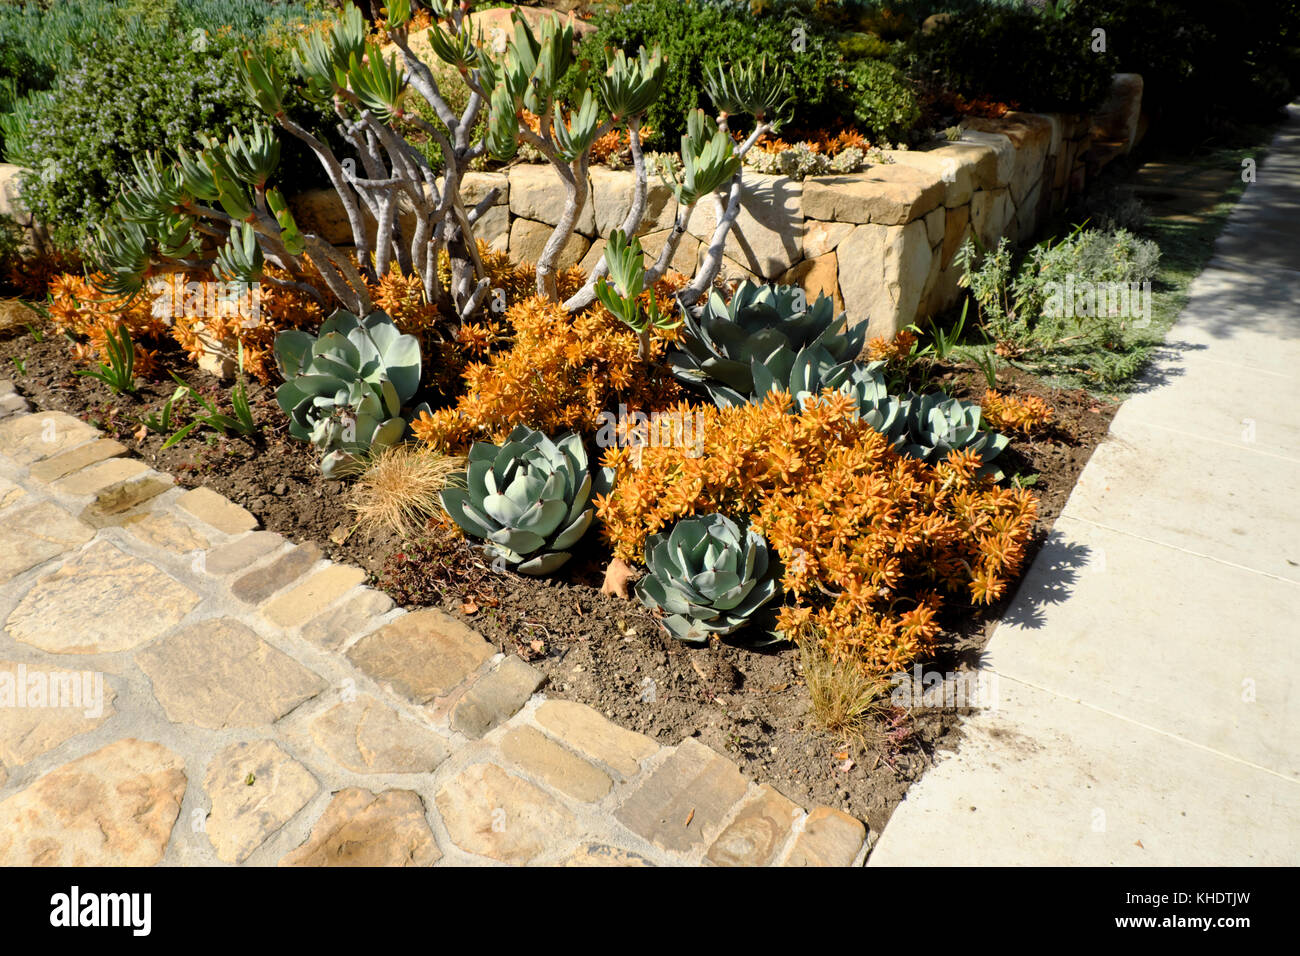 Southern California Garden Stock Photos & Southern California Garden ...